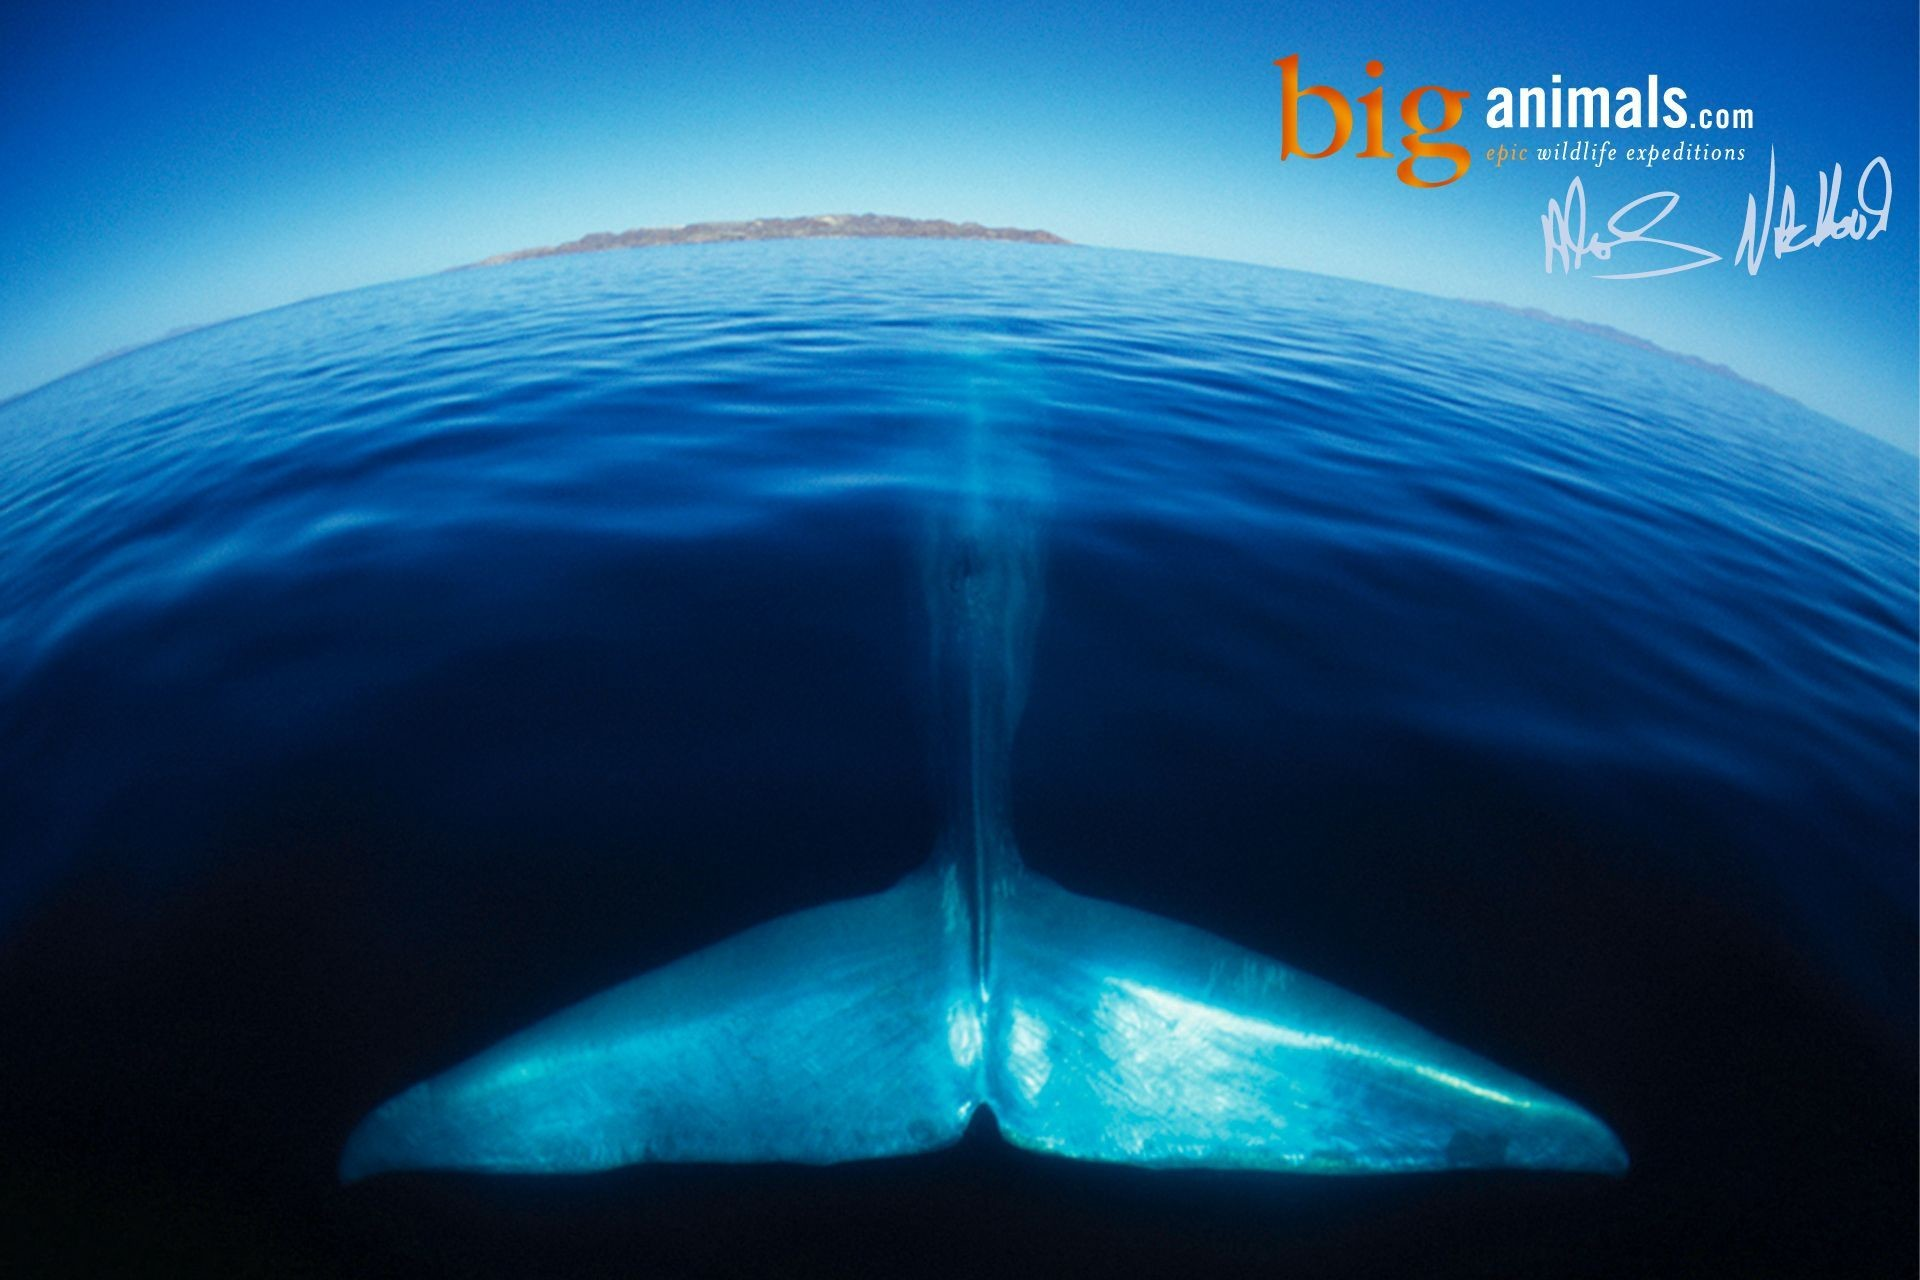 1920x1280 Blue Whale Cool Wallpapers 12028 - Amazing Wallpaperz